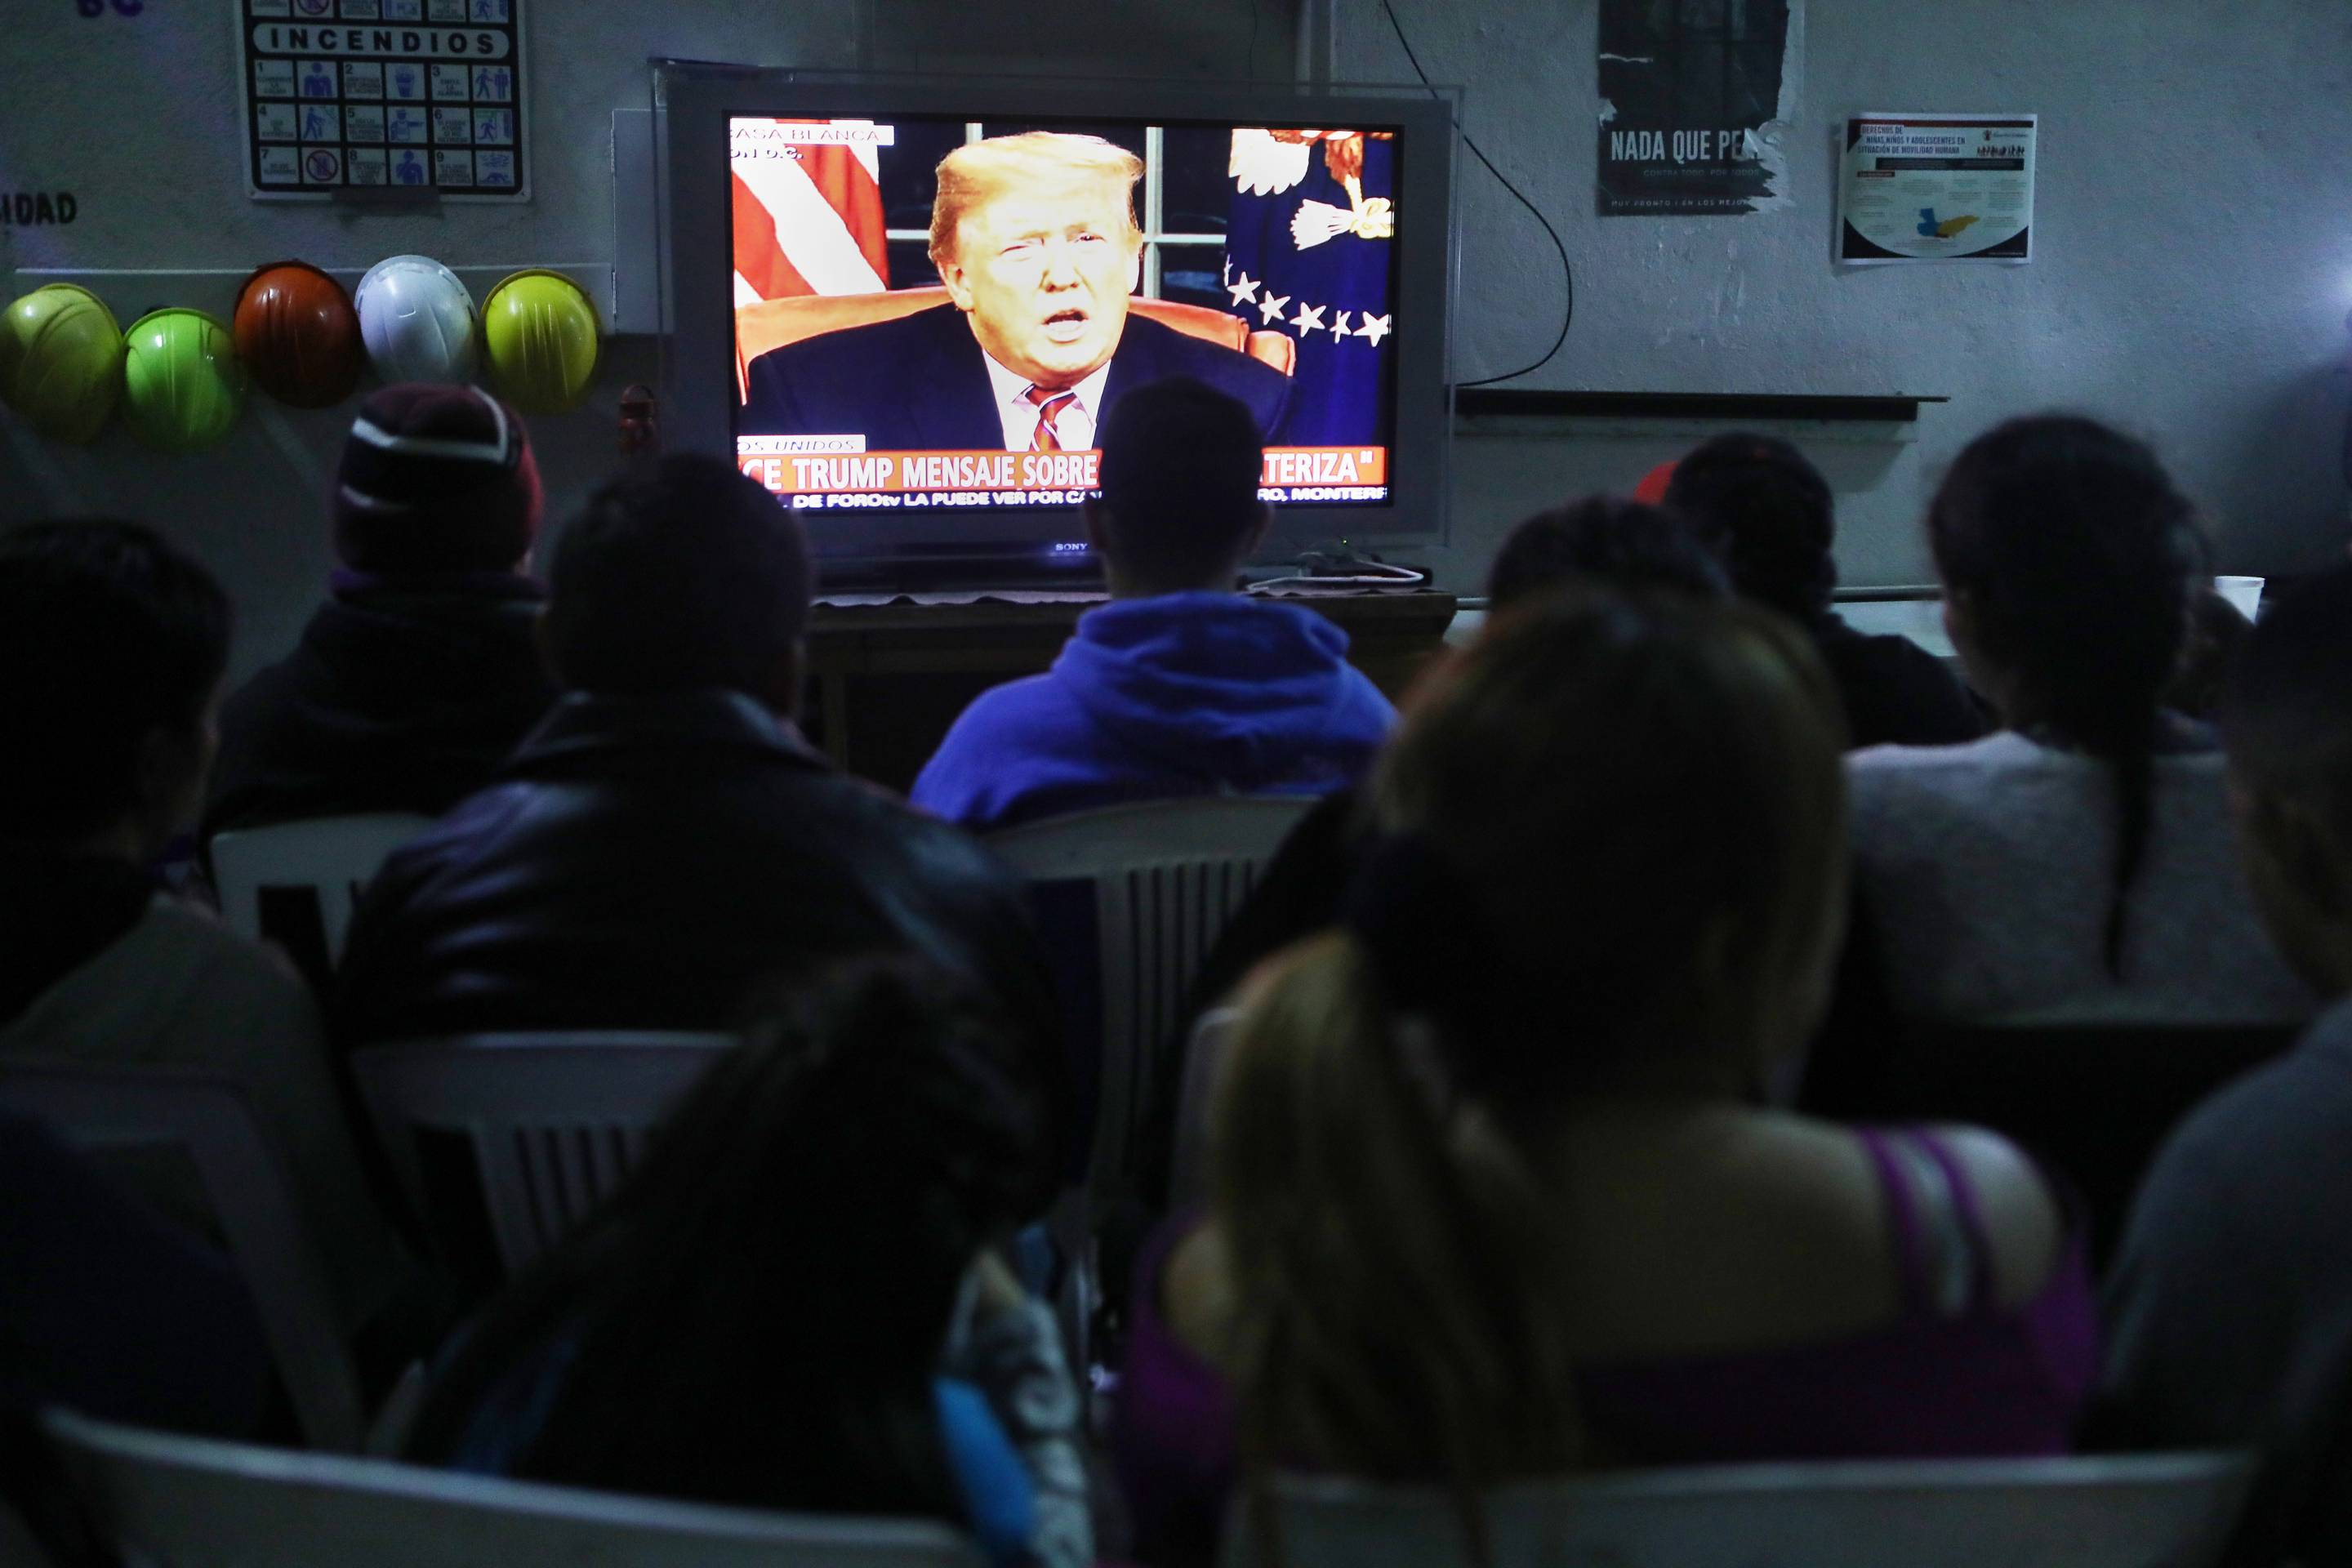 Migrants view a live televised speech by President Donald Trump on border security at a shelter on Jan. 8, 2019 in Tijuana, Mexico.